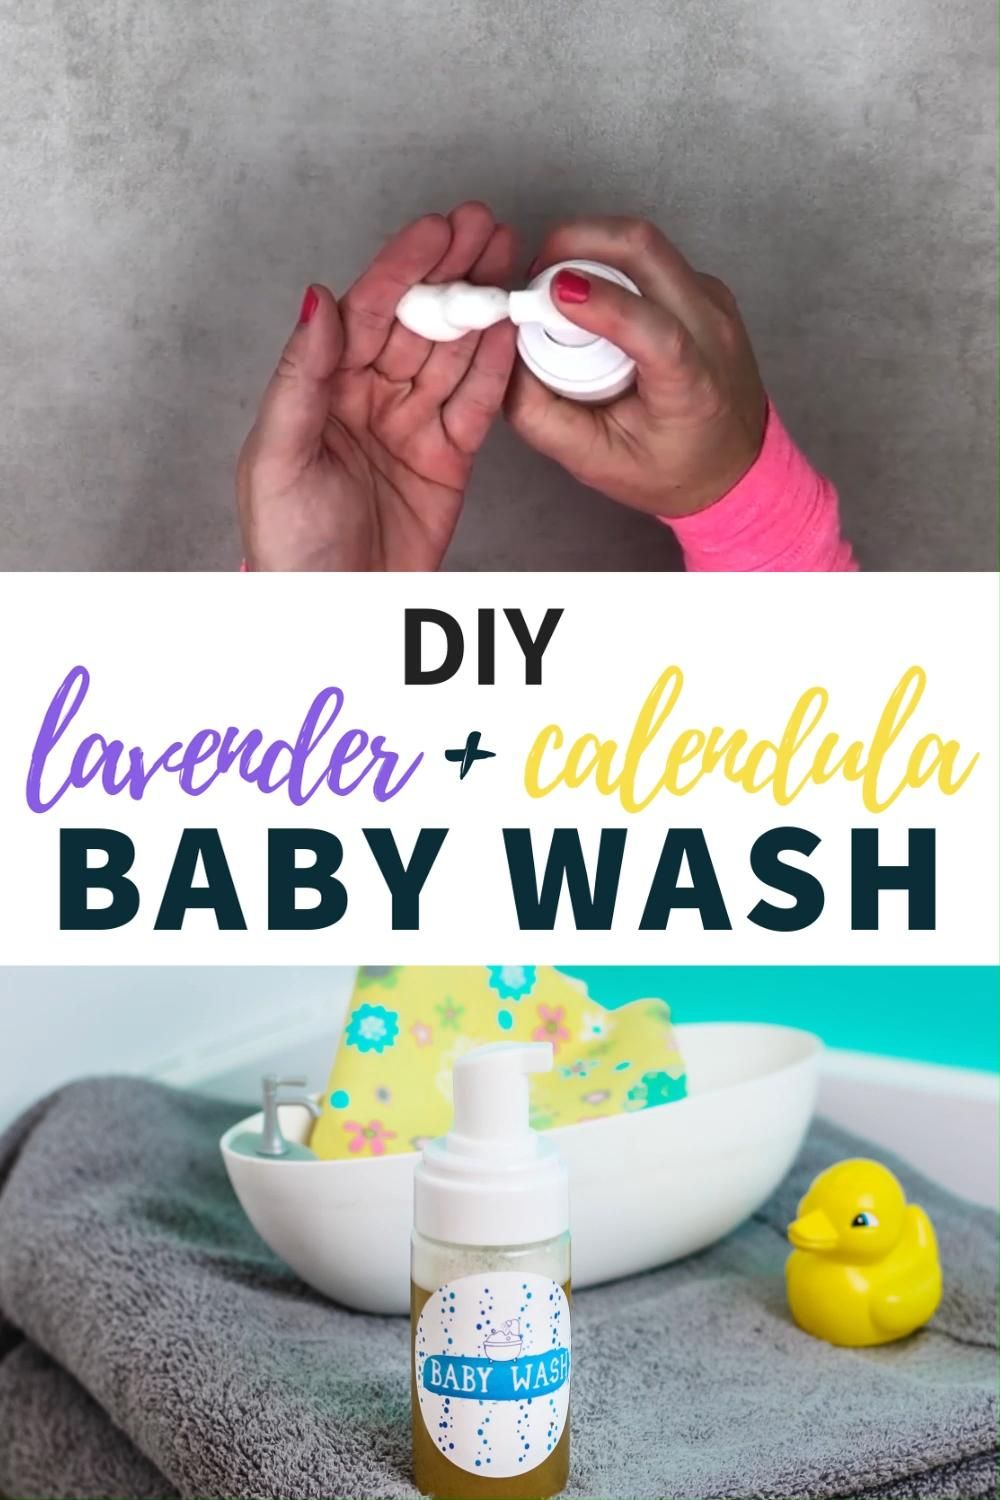 19 diy Baby products ideas